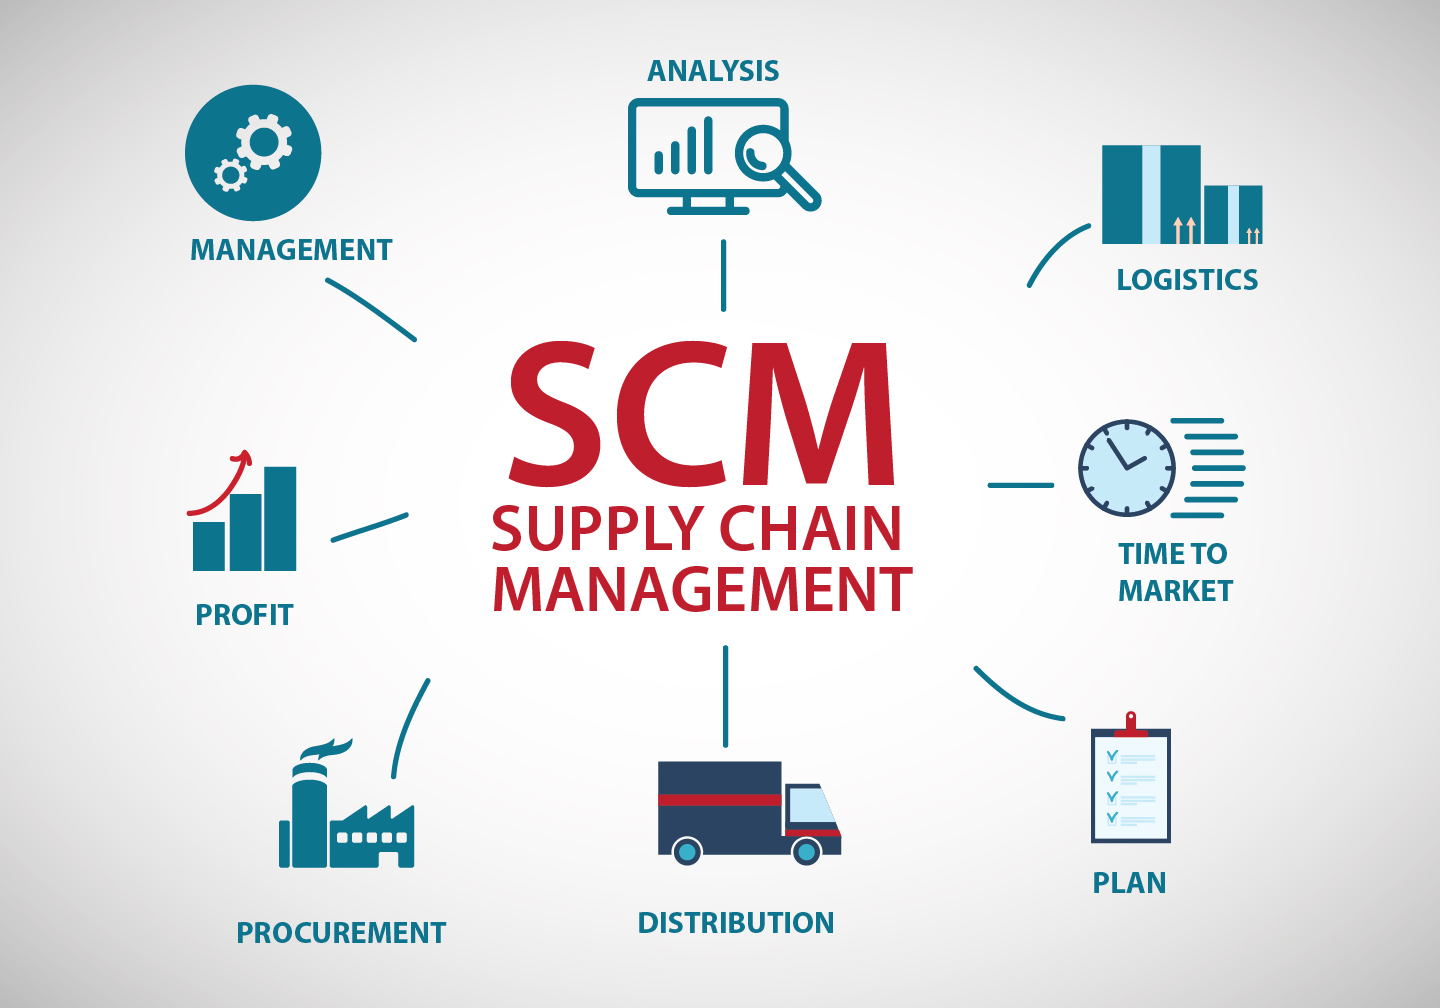 PELATIHAN BEST PRACTICES SUPPLY CHAIN MANAGEMENT